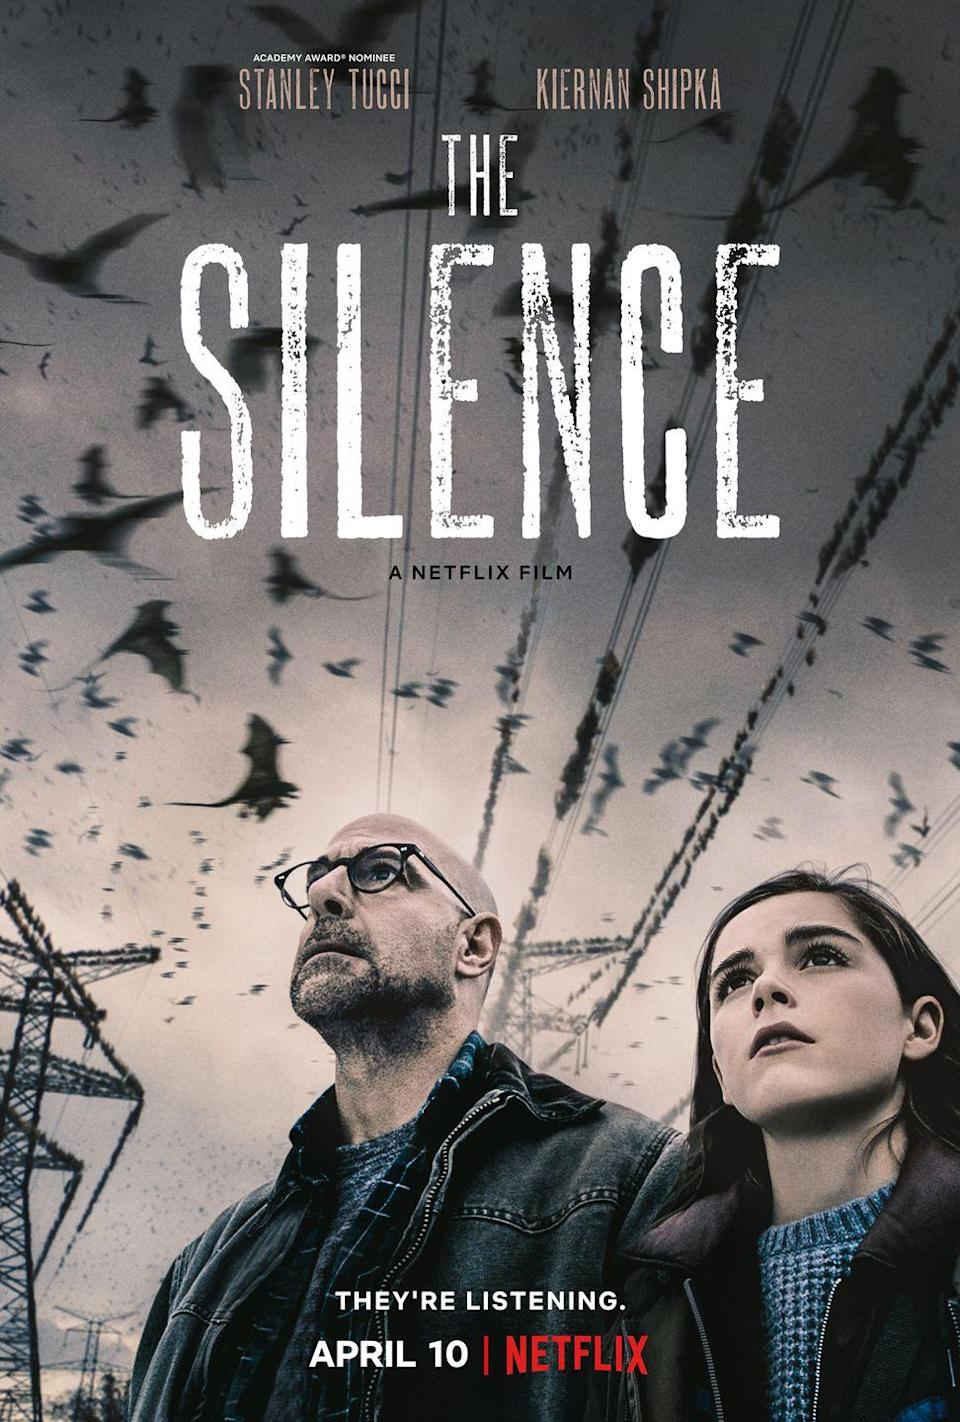 """<p>A family tries to survive in a world where creatures hunt by sound. The Netflix original—which is <a href=""""https://www.amazon.com/Silence-Tim-Lebbon/dp/1781168822?tag=syn-yahoo-20&ascsubtag=%5Bartid%7C10050.g.22119835%5Bsrc%7Cyahoo-us"""" rel=""""nofollow noopener"""" target=""""_blank"""" data-ylk=""""slk:based on the book of the same name"""" class=""""link rapid-noclick-resp"""">based on the book of the same name</a>—stars Stanley Tucci and Kiernan Shipka.</p><p><a class=""""link rapid-noclick-resp"""" href=""""https://www.netflix.com/title/81021447"""" rel=""""nofollow noopener"""" target=""""_blank"""" data-ylk=""""slk:STREAM NOW"""">STREAM NOW</a></p>"""